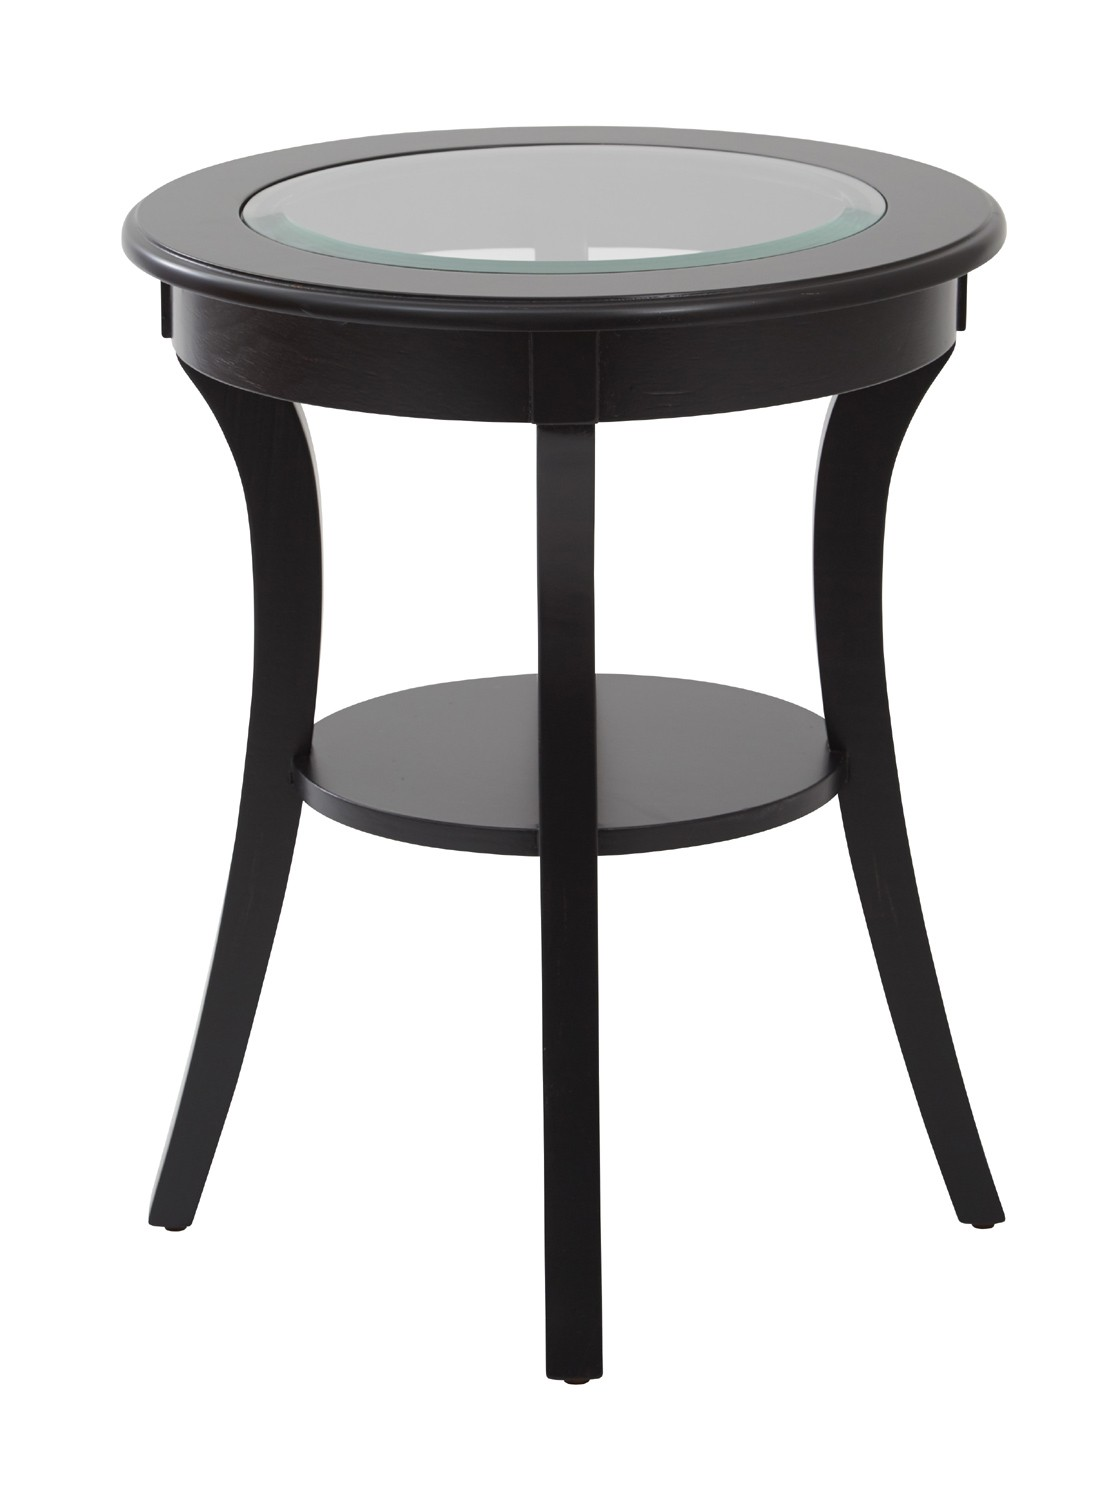 stylish black round accent table with office star harper glass top brushed counter high dining room sets kmart furniture bedroom small stackable tables mirror end legs wood